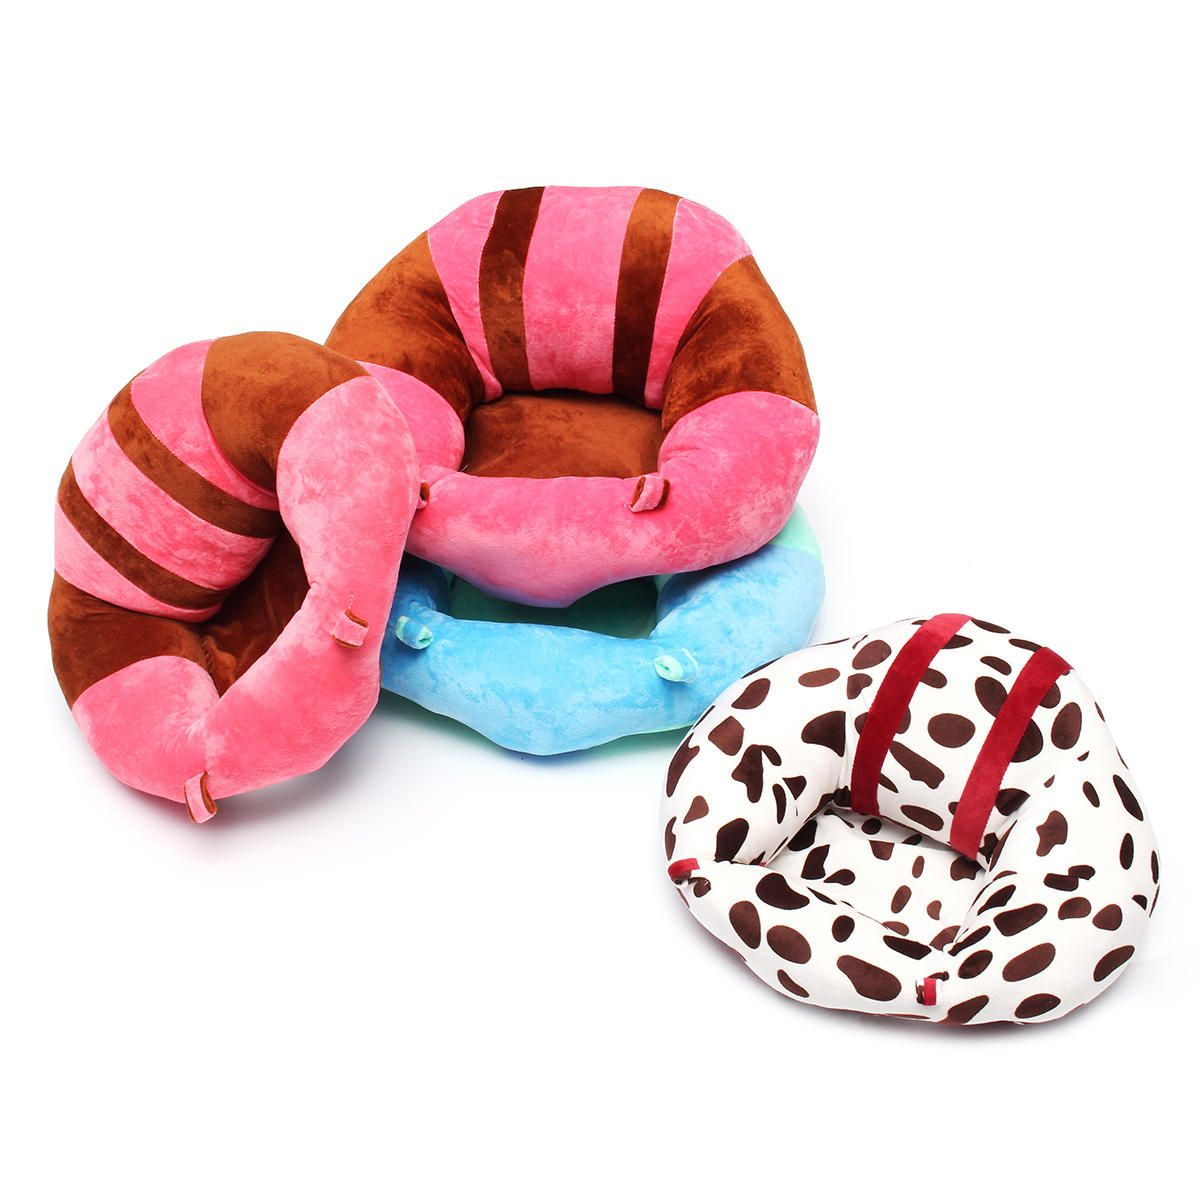 Baby Sofa Support Seat Nursing Pillow Safety Feeding Cushion Pad Chair Plush Toy Feeding Supplies From Mother Kids On Banggood Com Baby Sofa Nursing Pillow Chair Pads